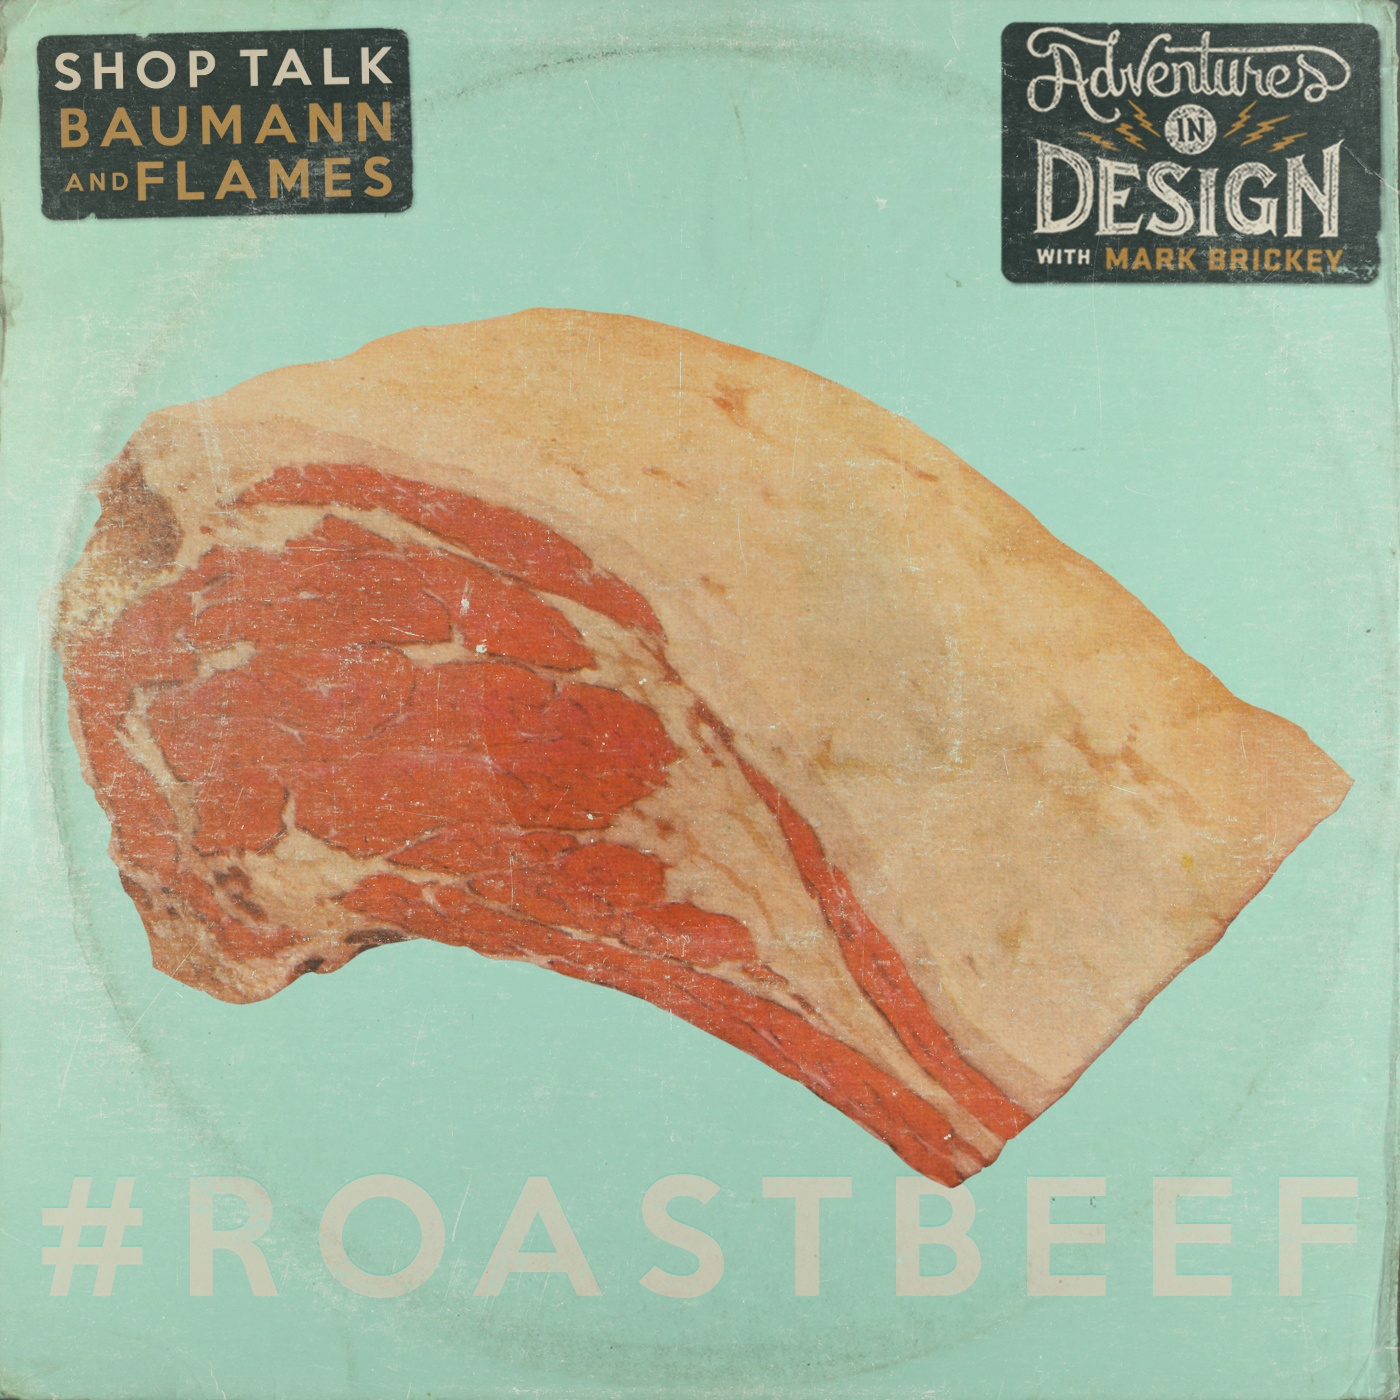 """Episode 369 - Shop Talk with Billy Baumann and James Flames """"Roast Beef"""""""